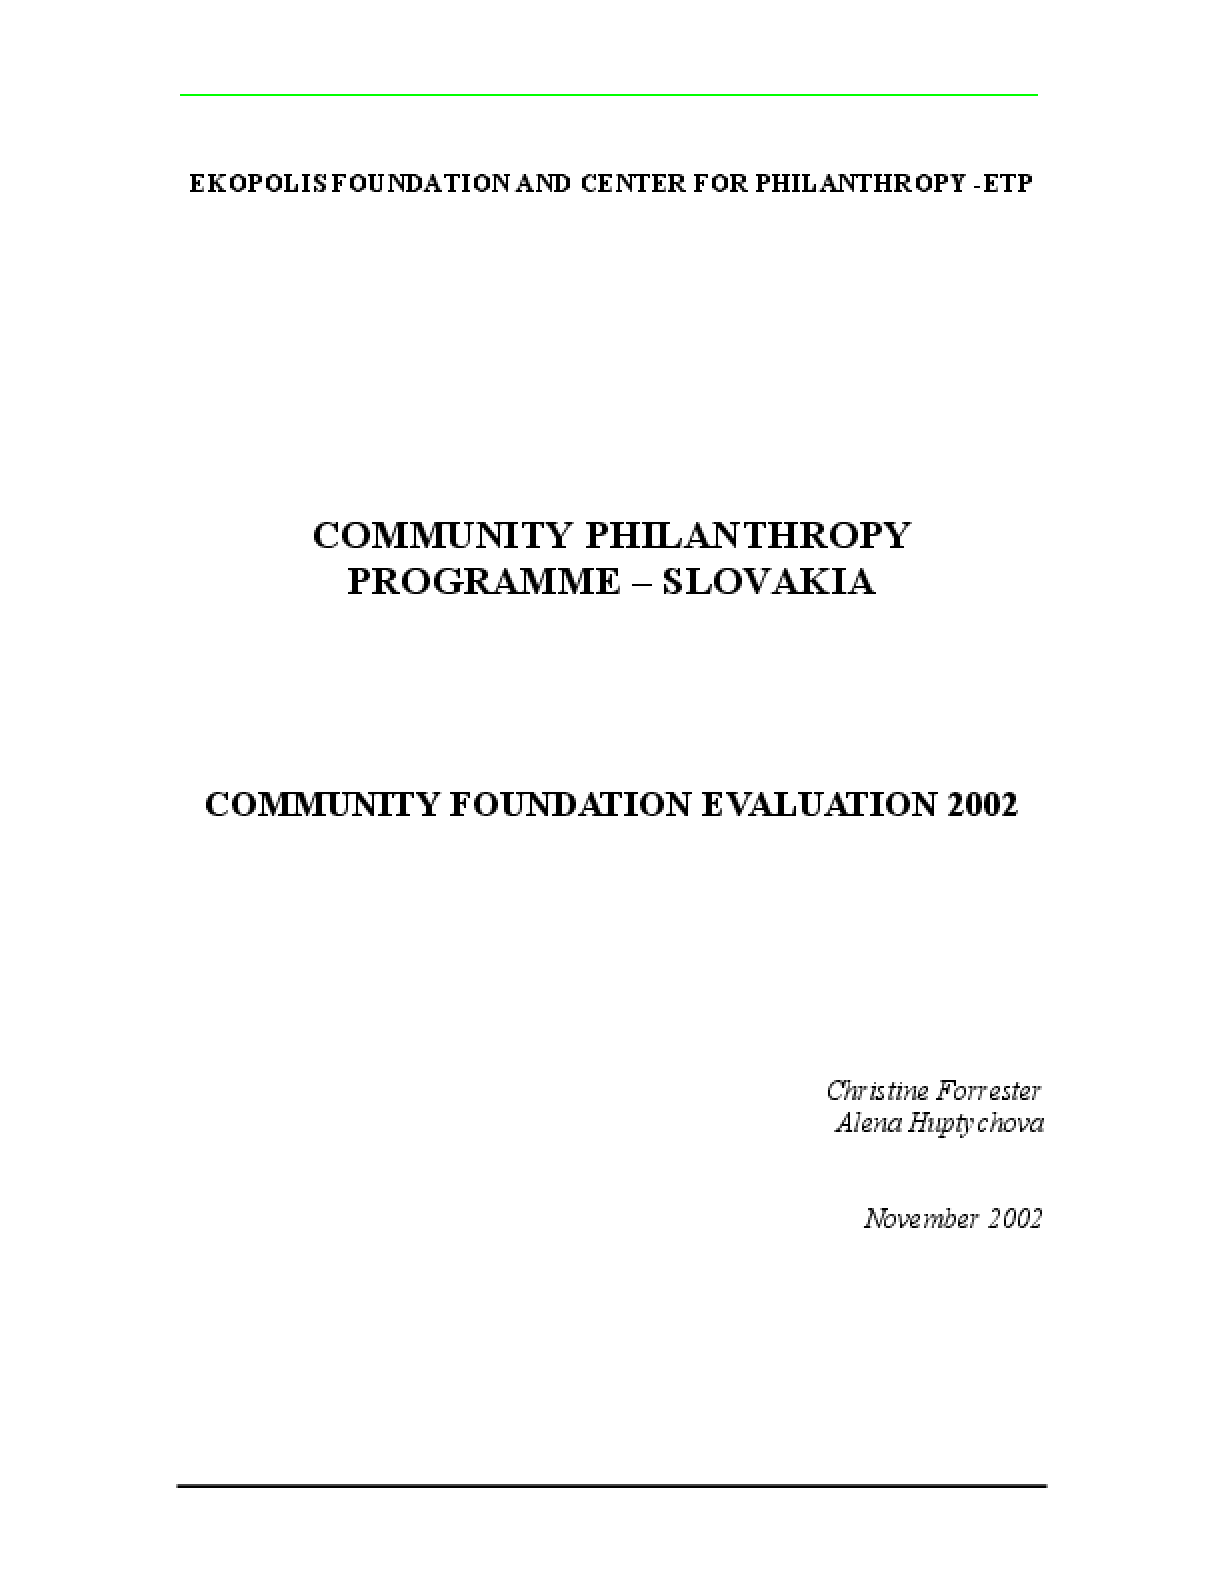 Community Philanthropy Programme - Slovakia: Community Foundations Evaluation 2002